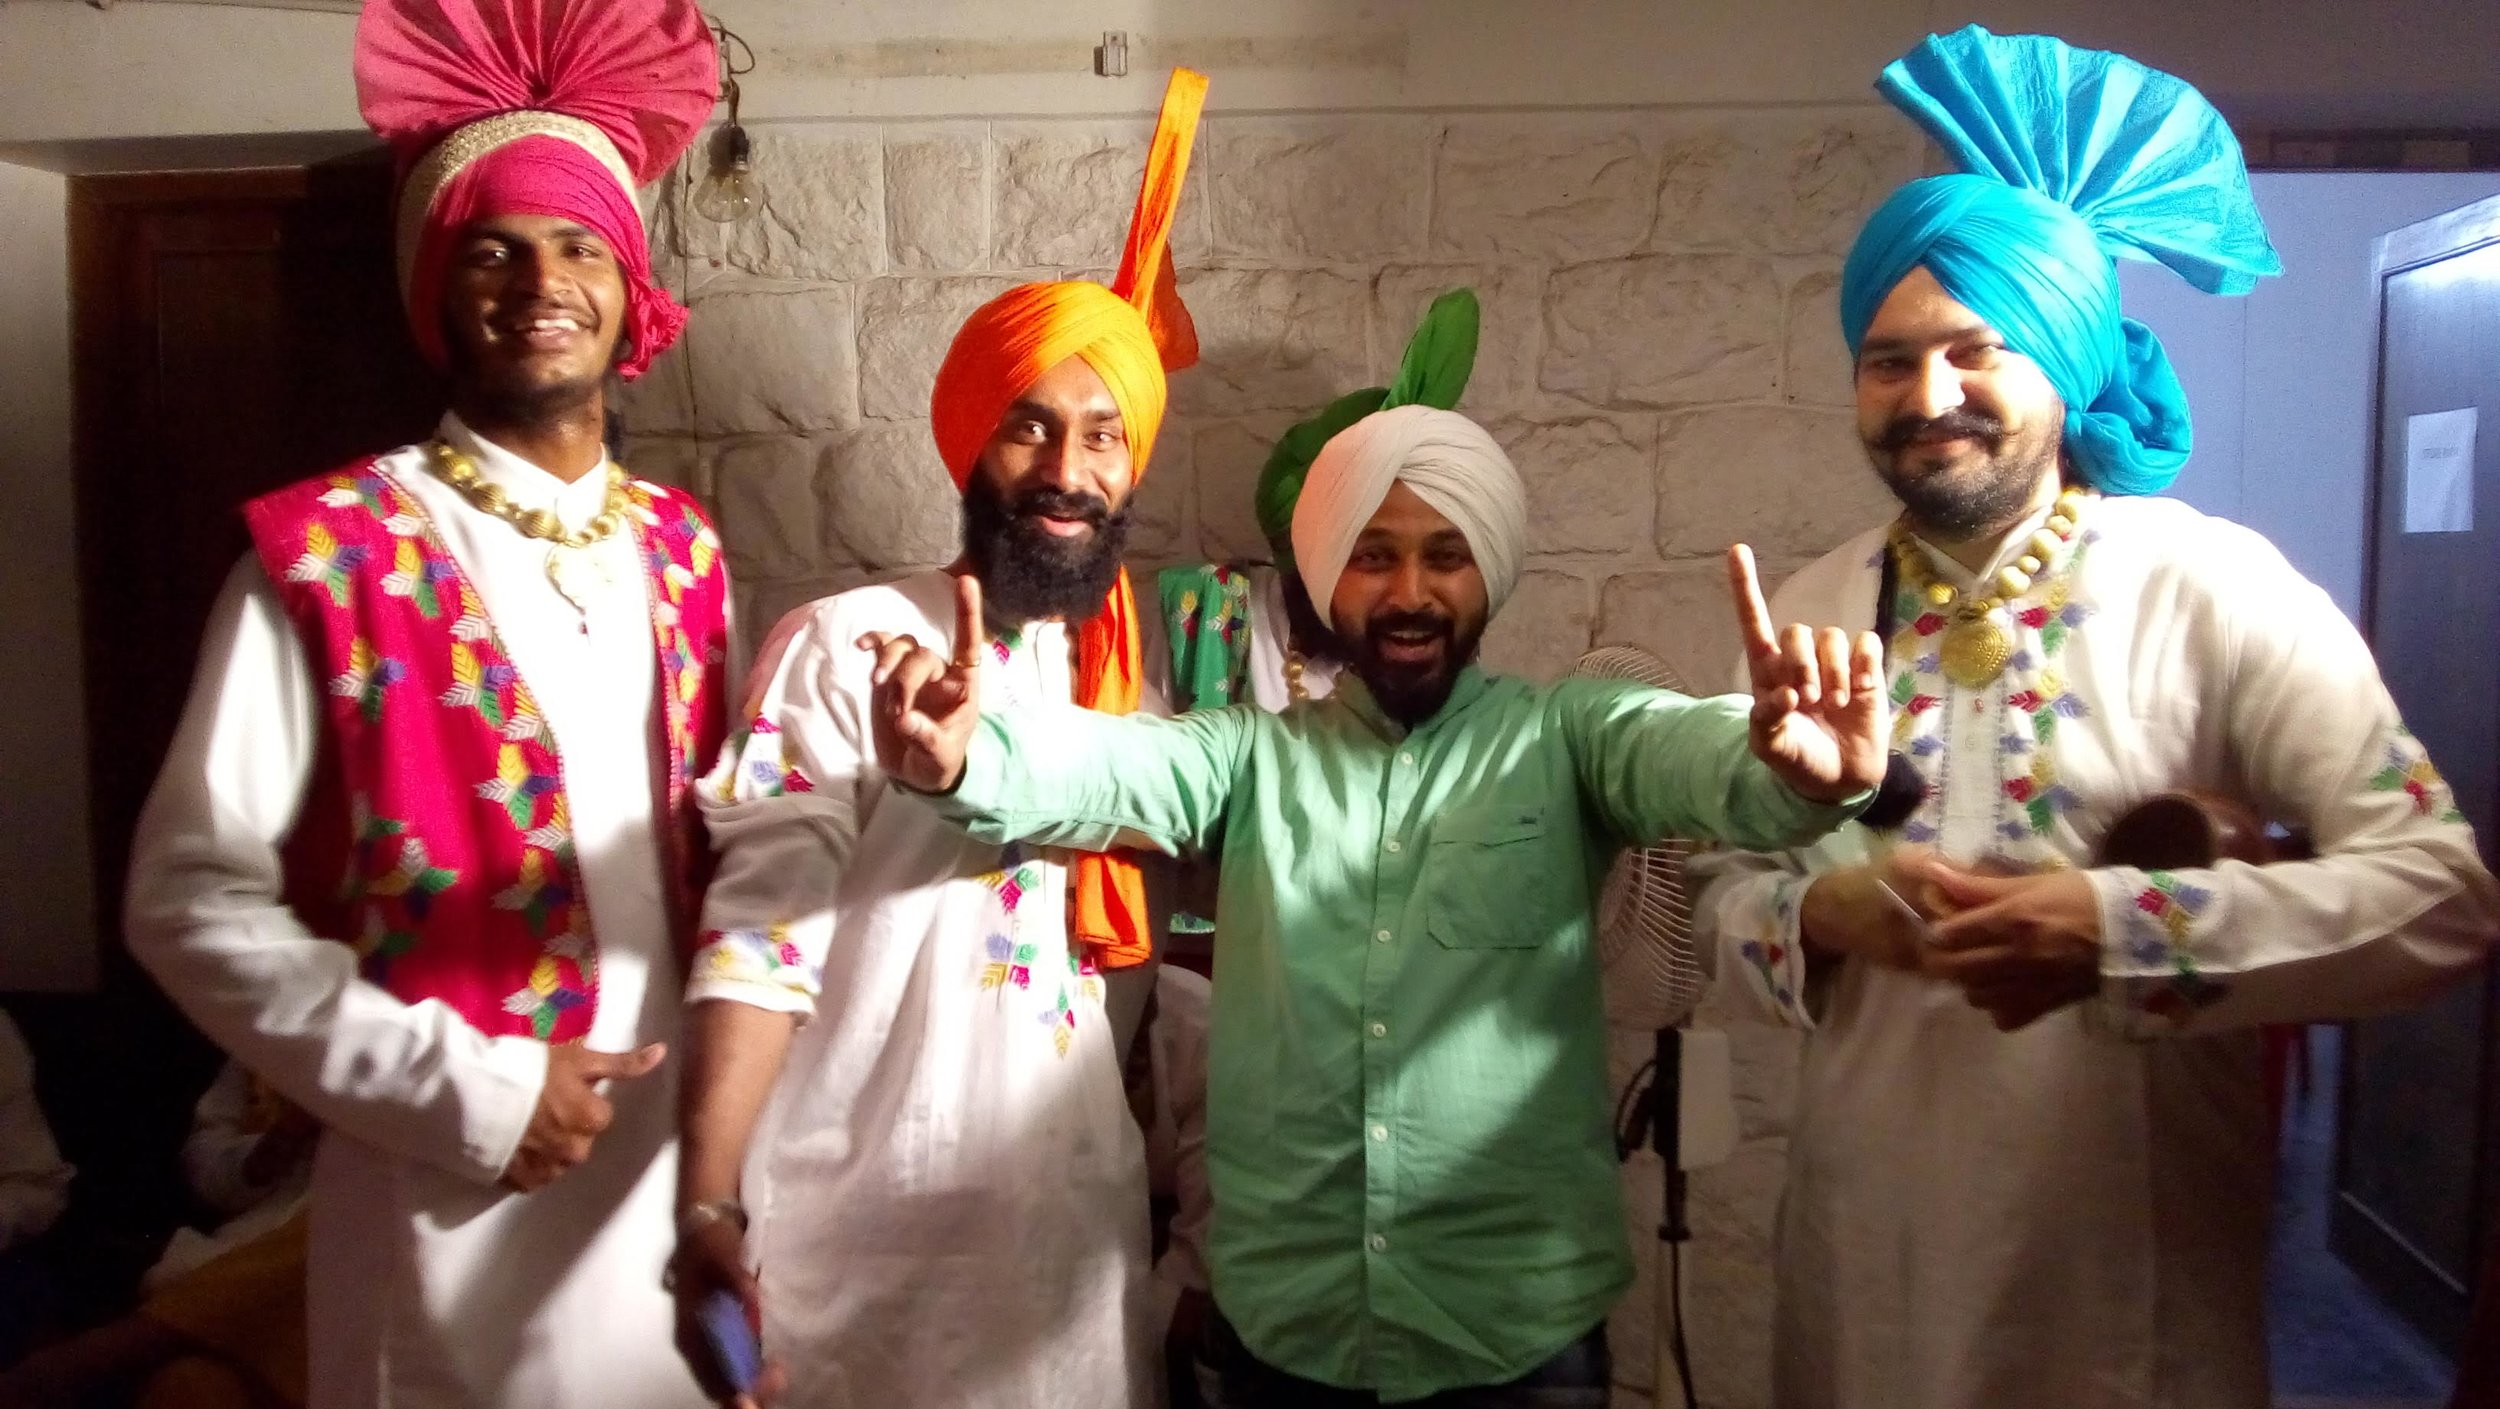 RJ Karthik posing with the Bhangra dancers